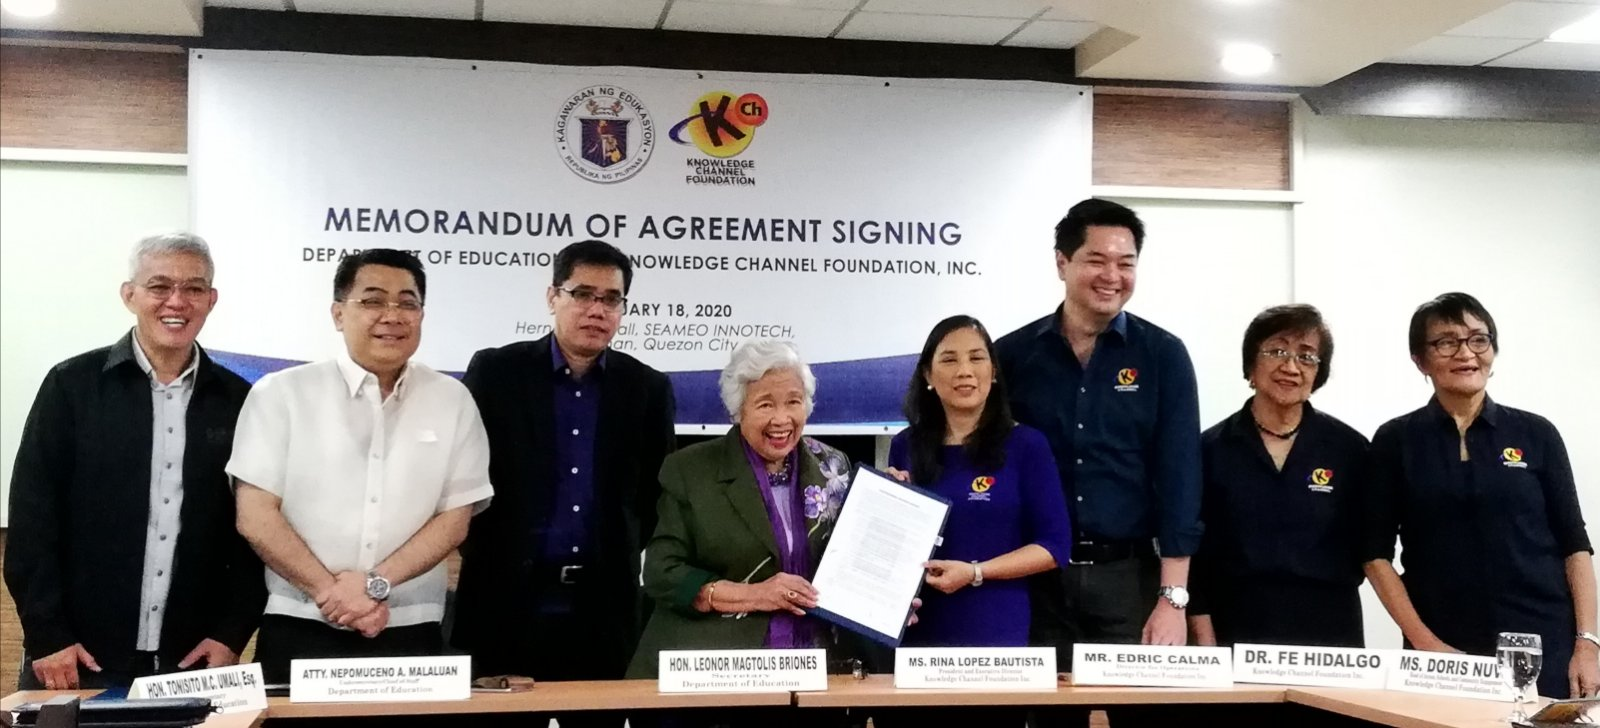 KNOWLEDGE CHANNEL FOUNDATION AND DEPED RENEW PARTNERSHIP